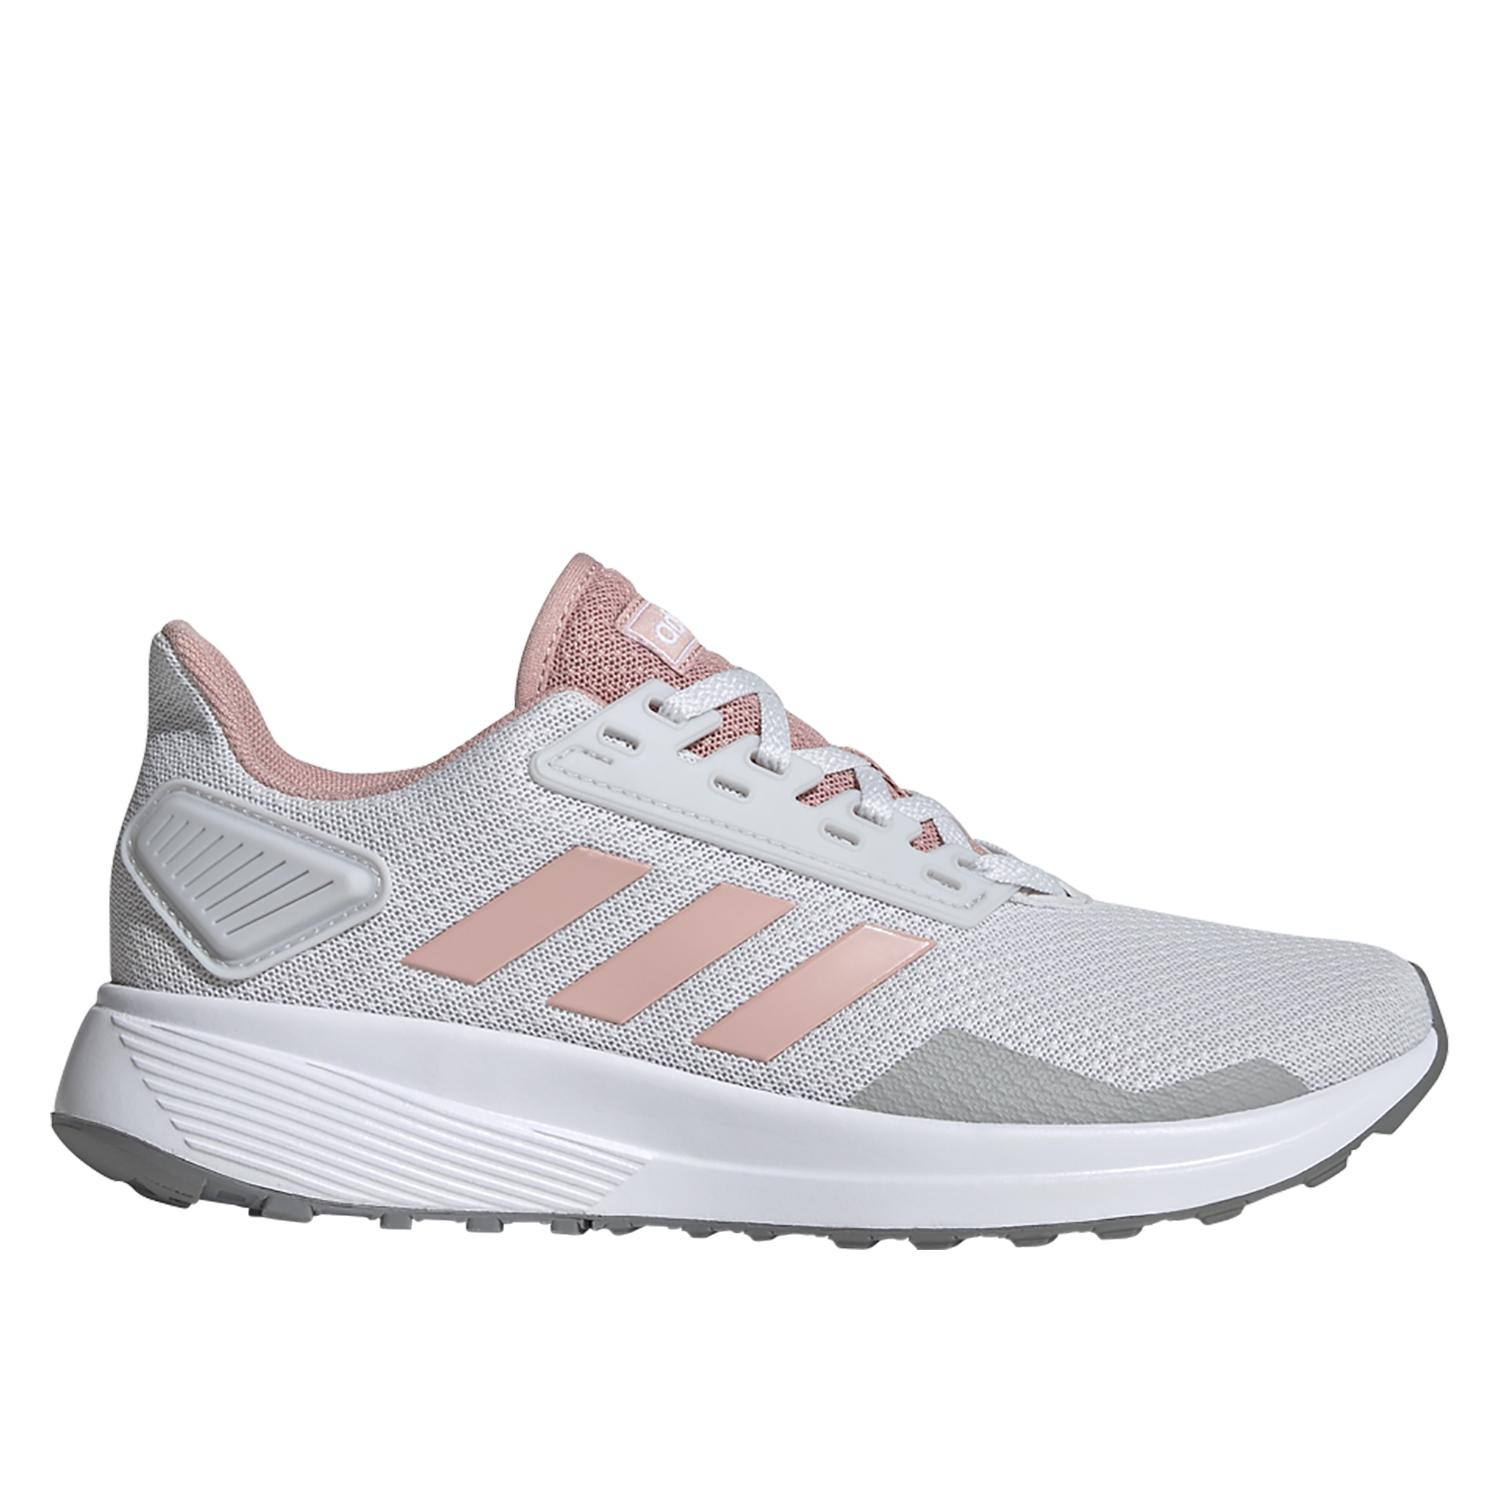 Details about Adidas Women Duramo 9 Training Shoes Running Pink Athletic Sneakers Shoe BB7071